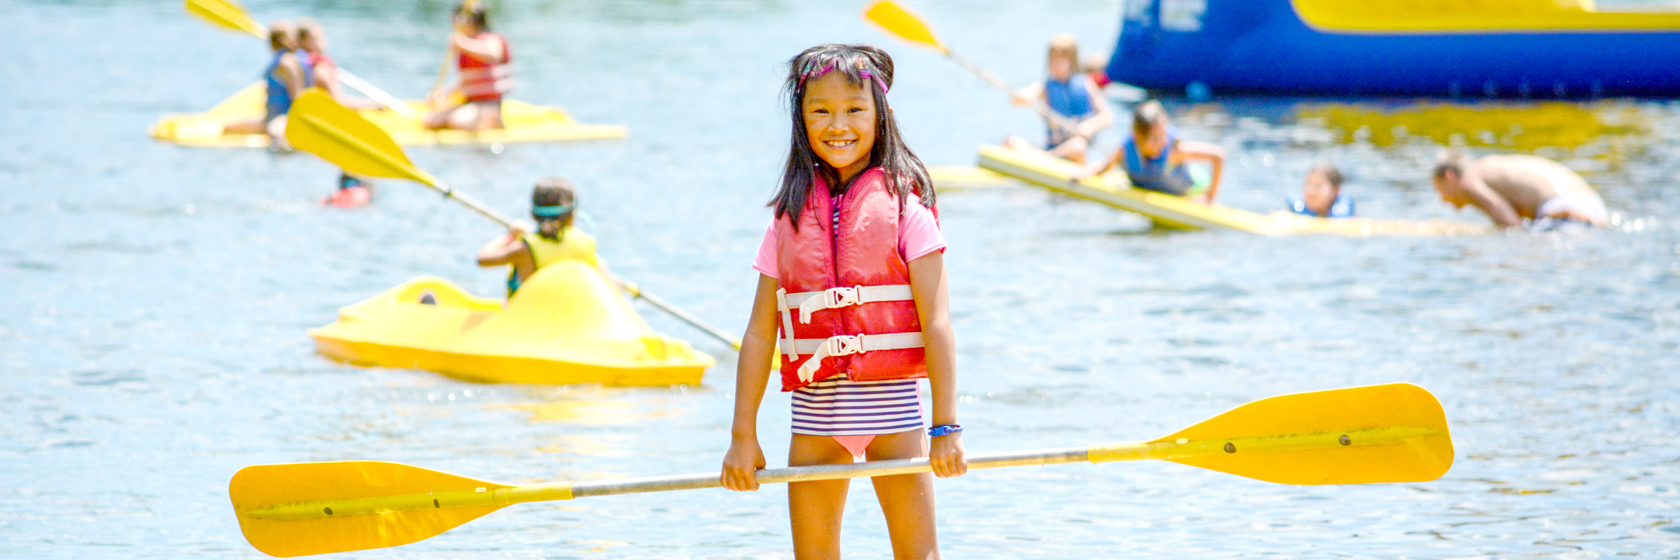 Girl camper standing up on a paddleboard in the lake smiling